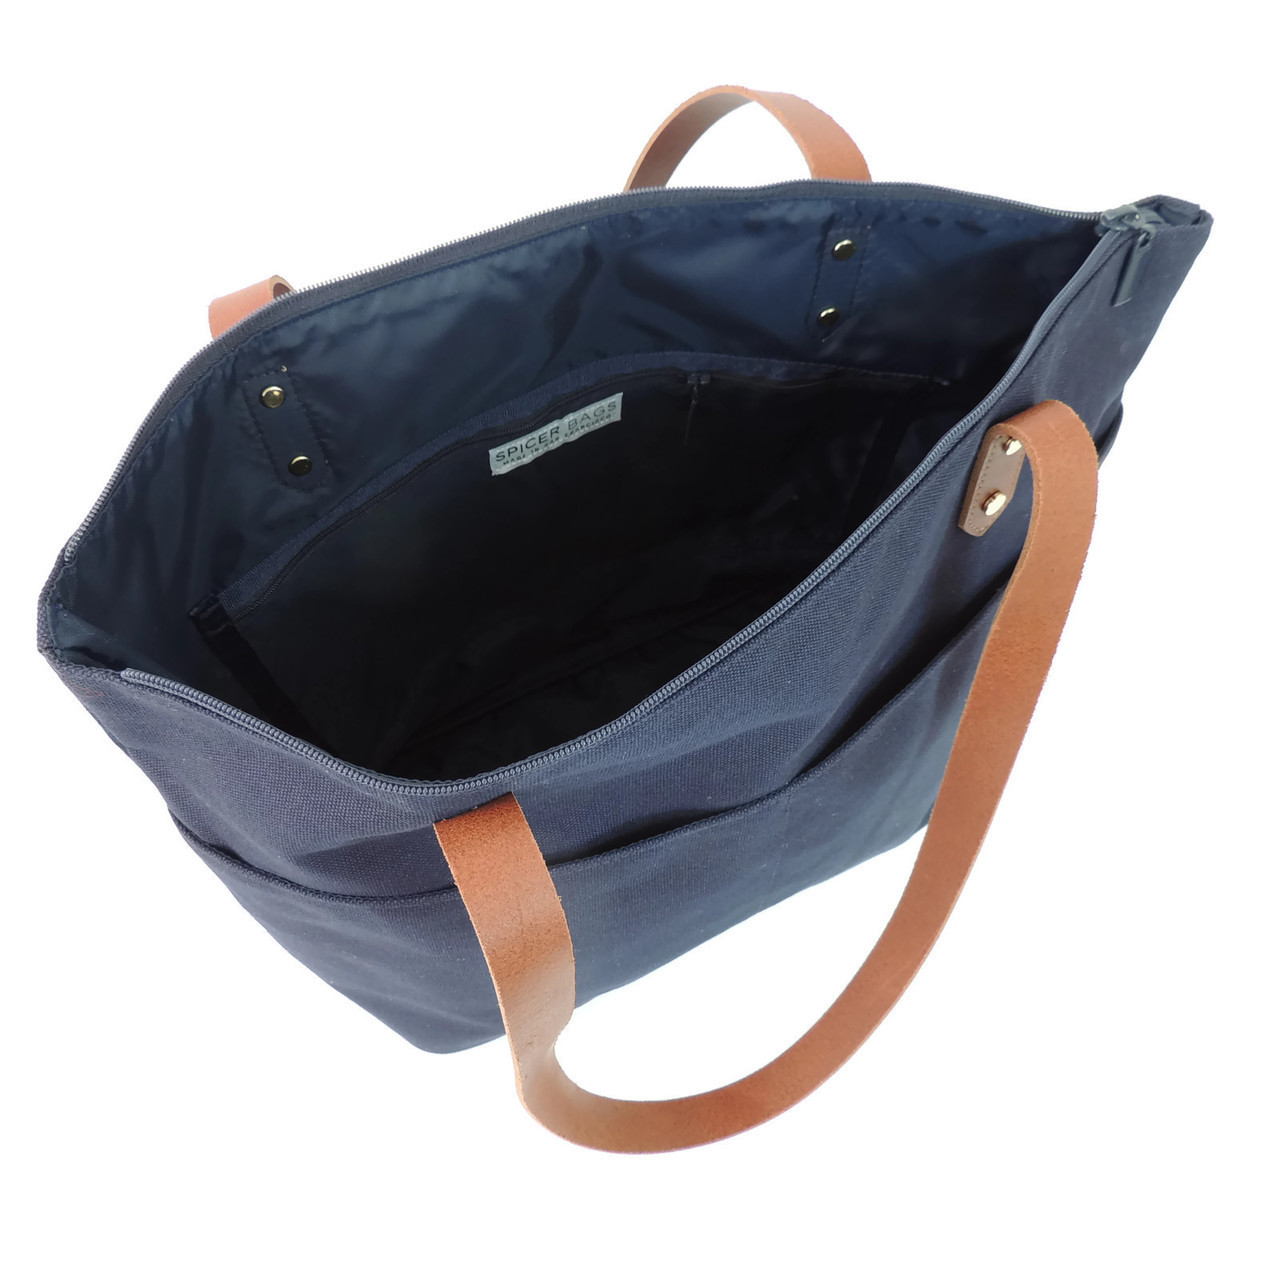 travel tote navy interior - Travel Tote Bags